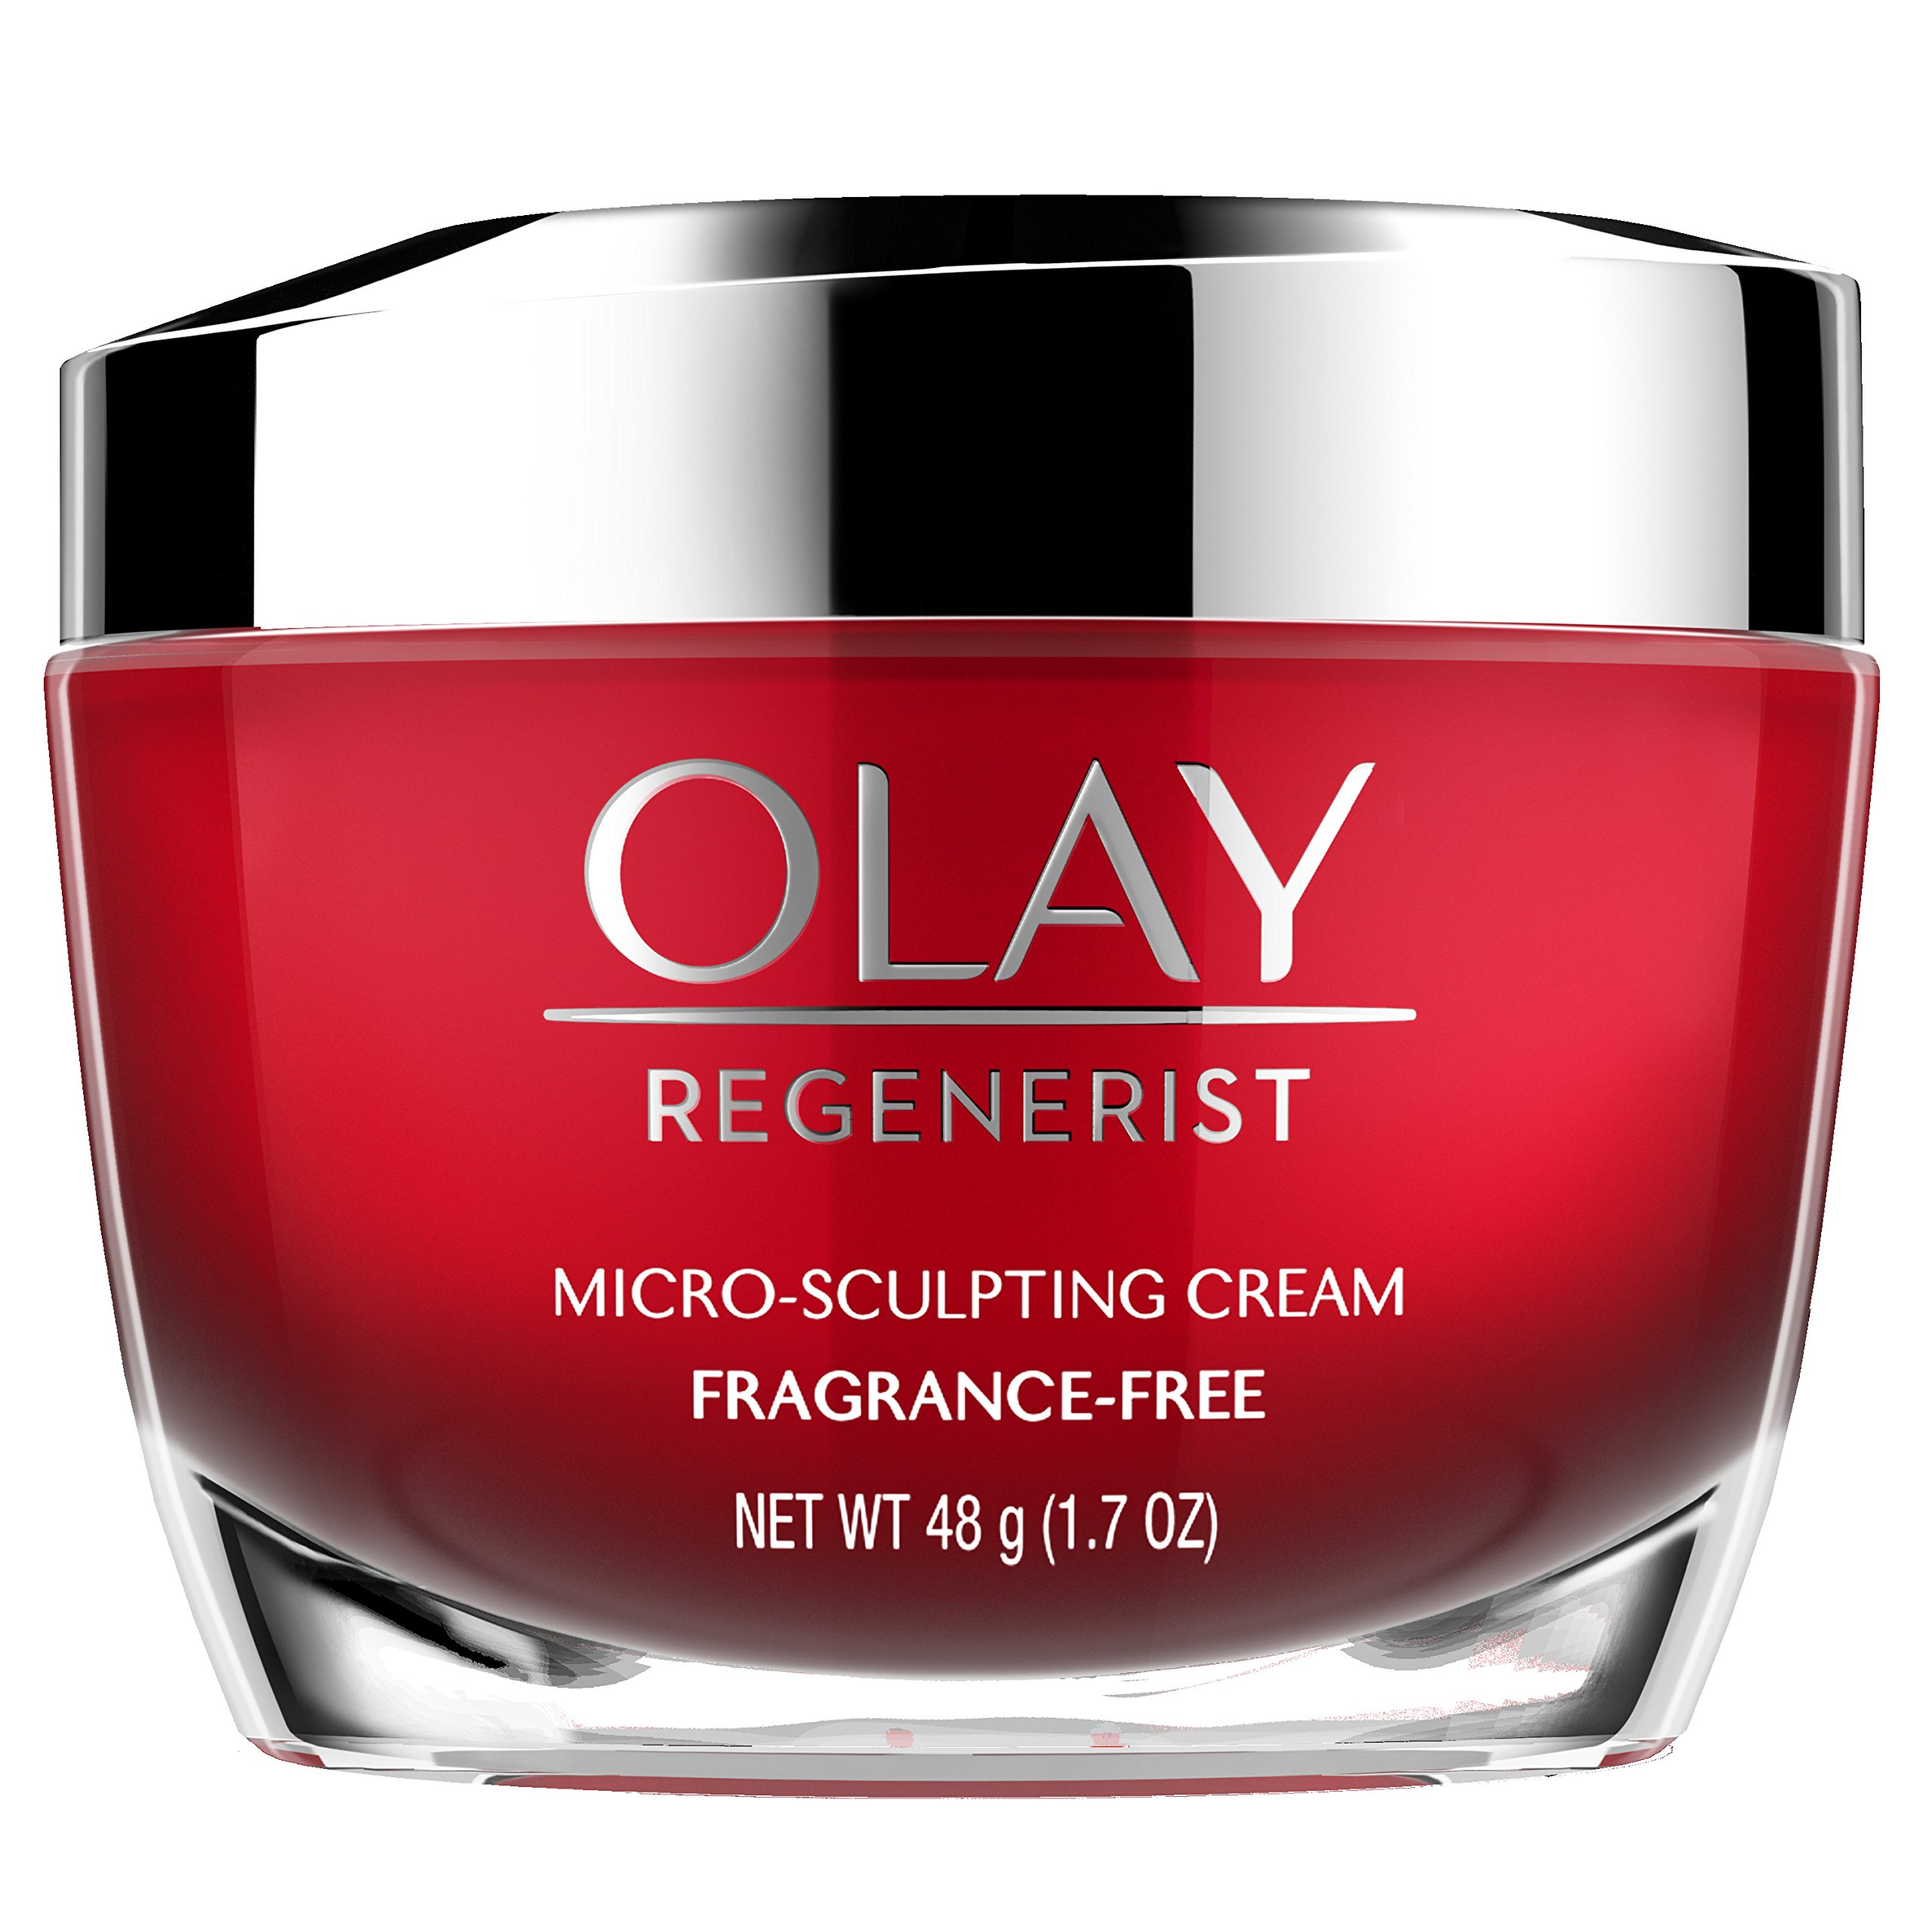 Anti-Aging Face Moisturizer Cream by Olay Regenerist, Micro-Sculpting & Fragrance-Free 1.7 Ounces (packaging may vary)